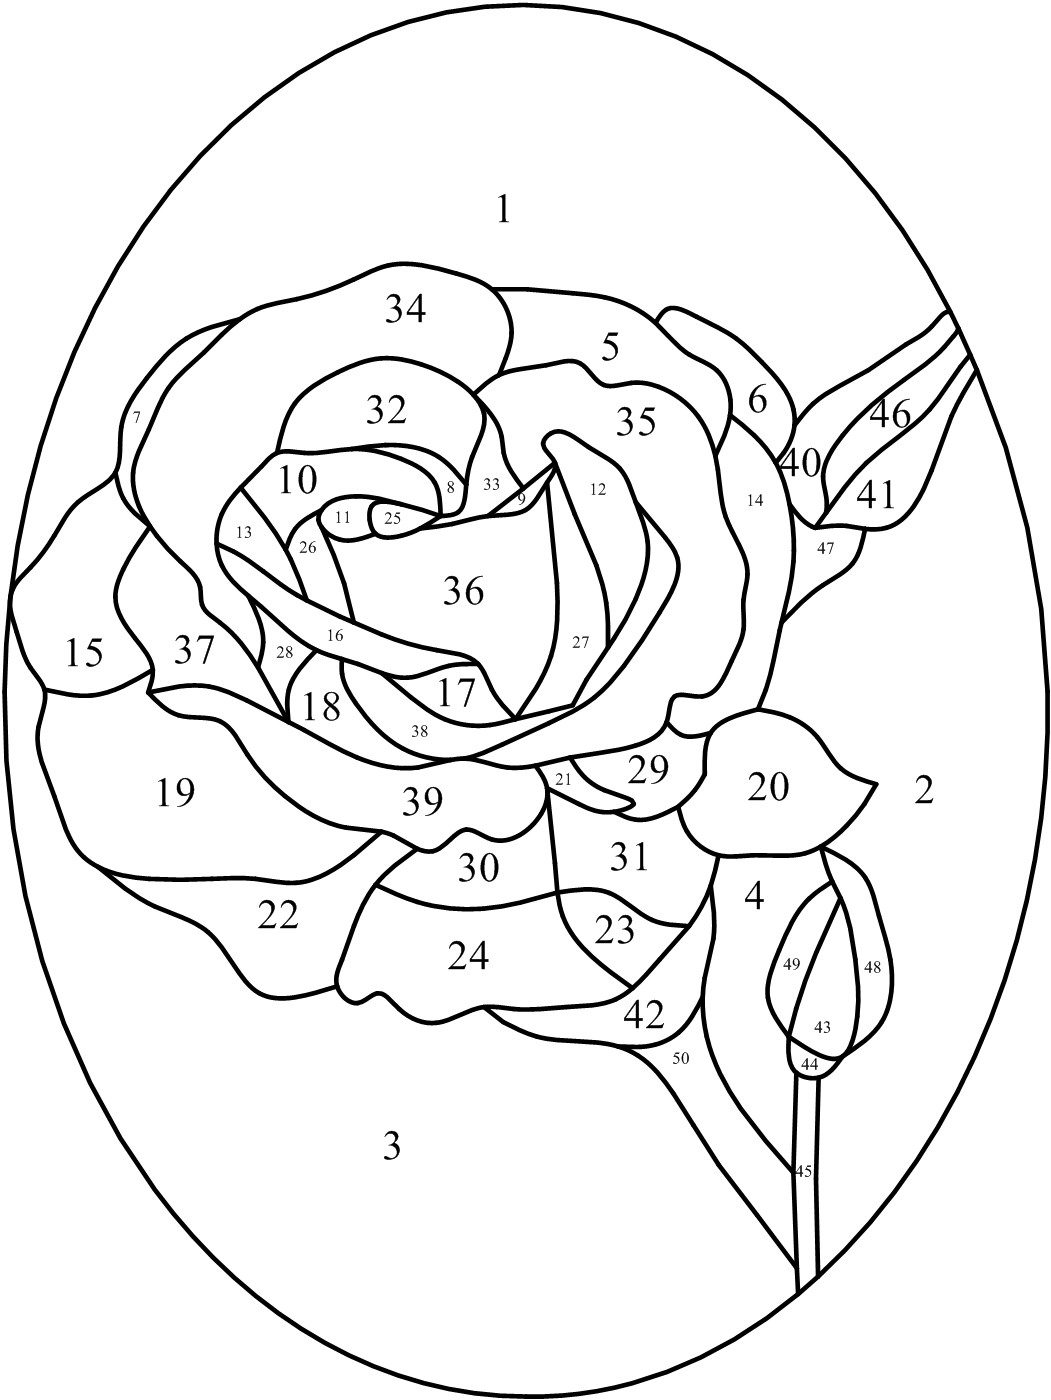 Rose Heart Stained Glass Pattern and Rose Heart Applique Pattern